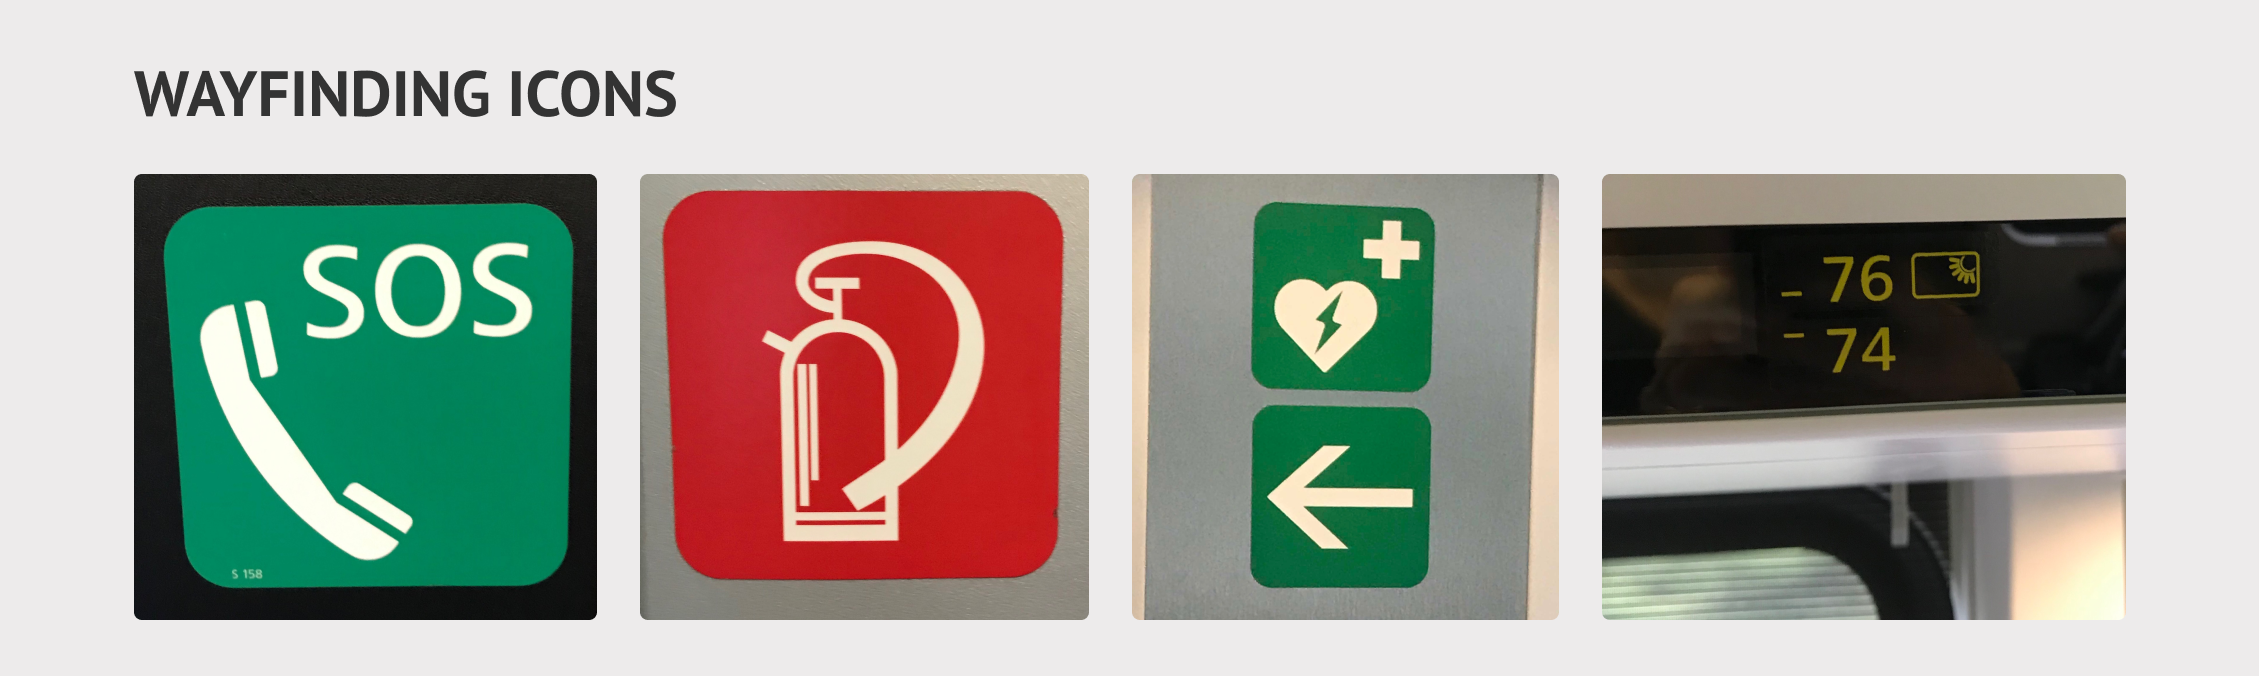 Images of the SOS, fire extinguisher, defibrillator, and seat number icons on the train.